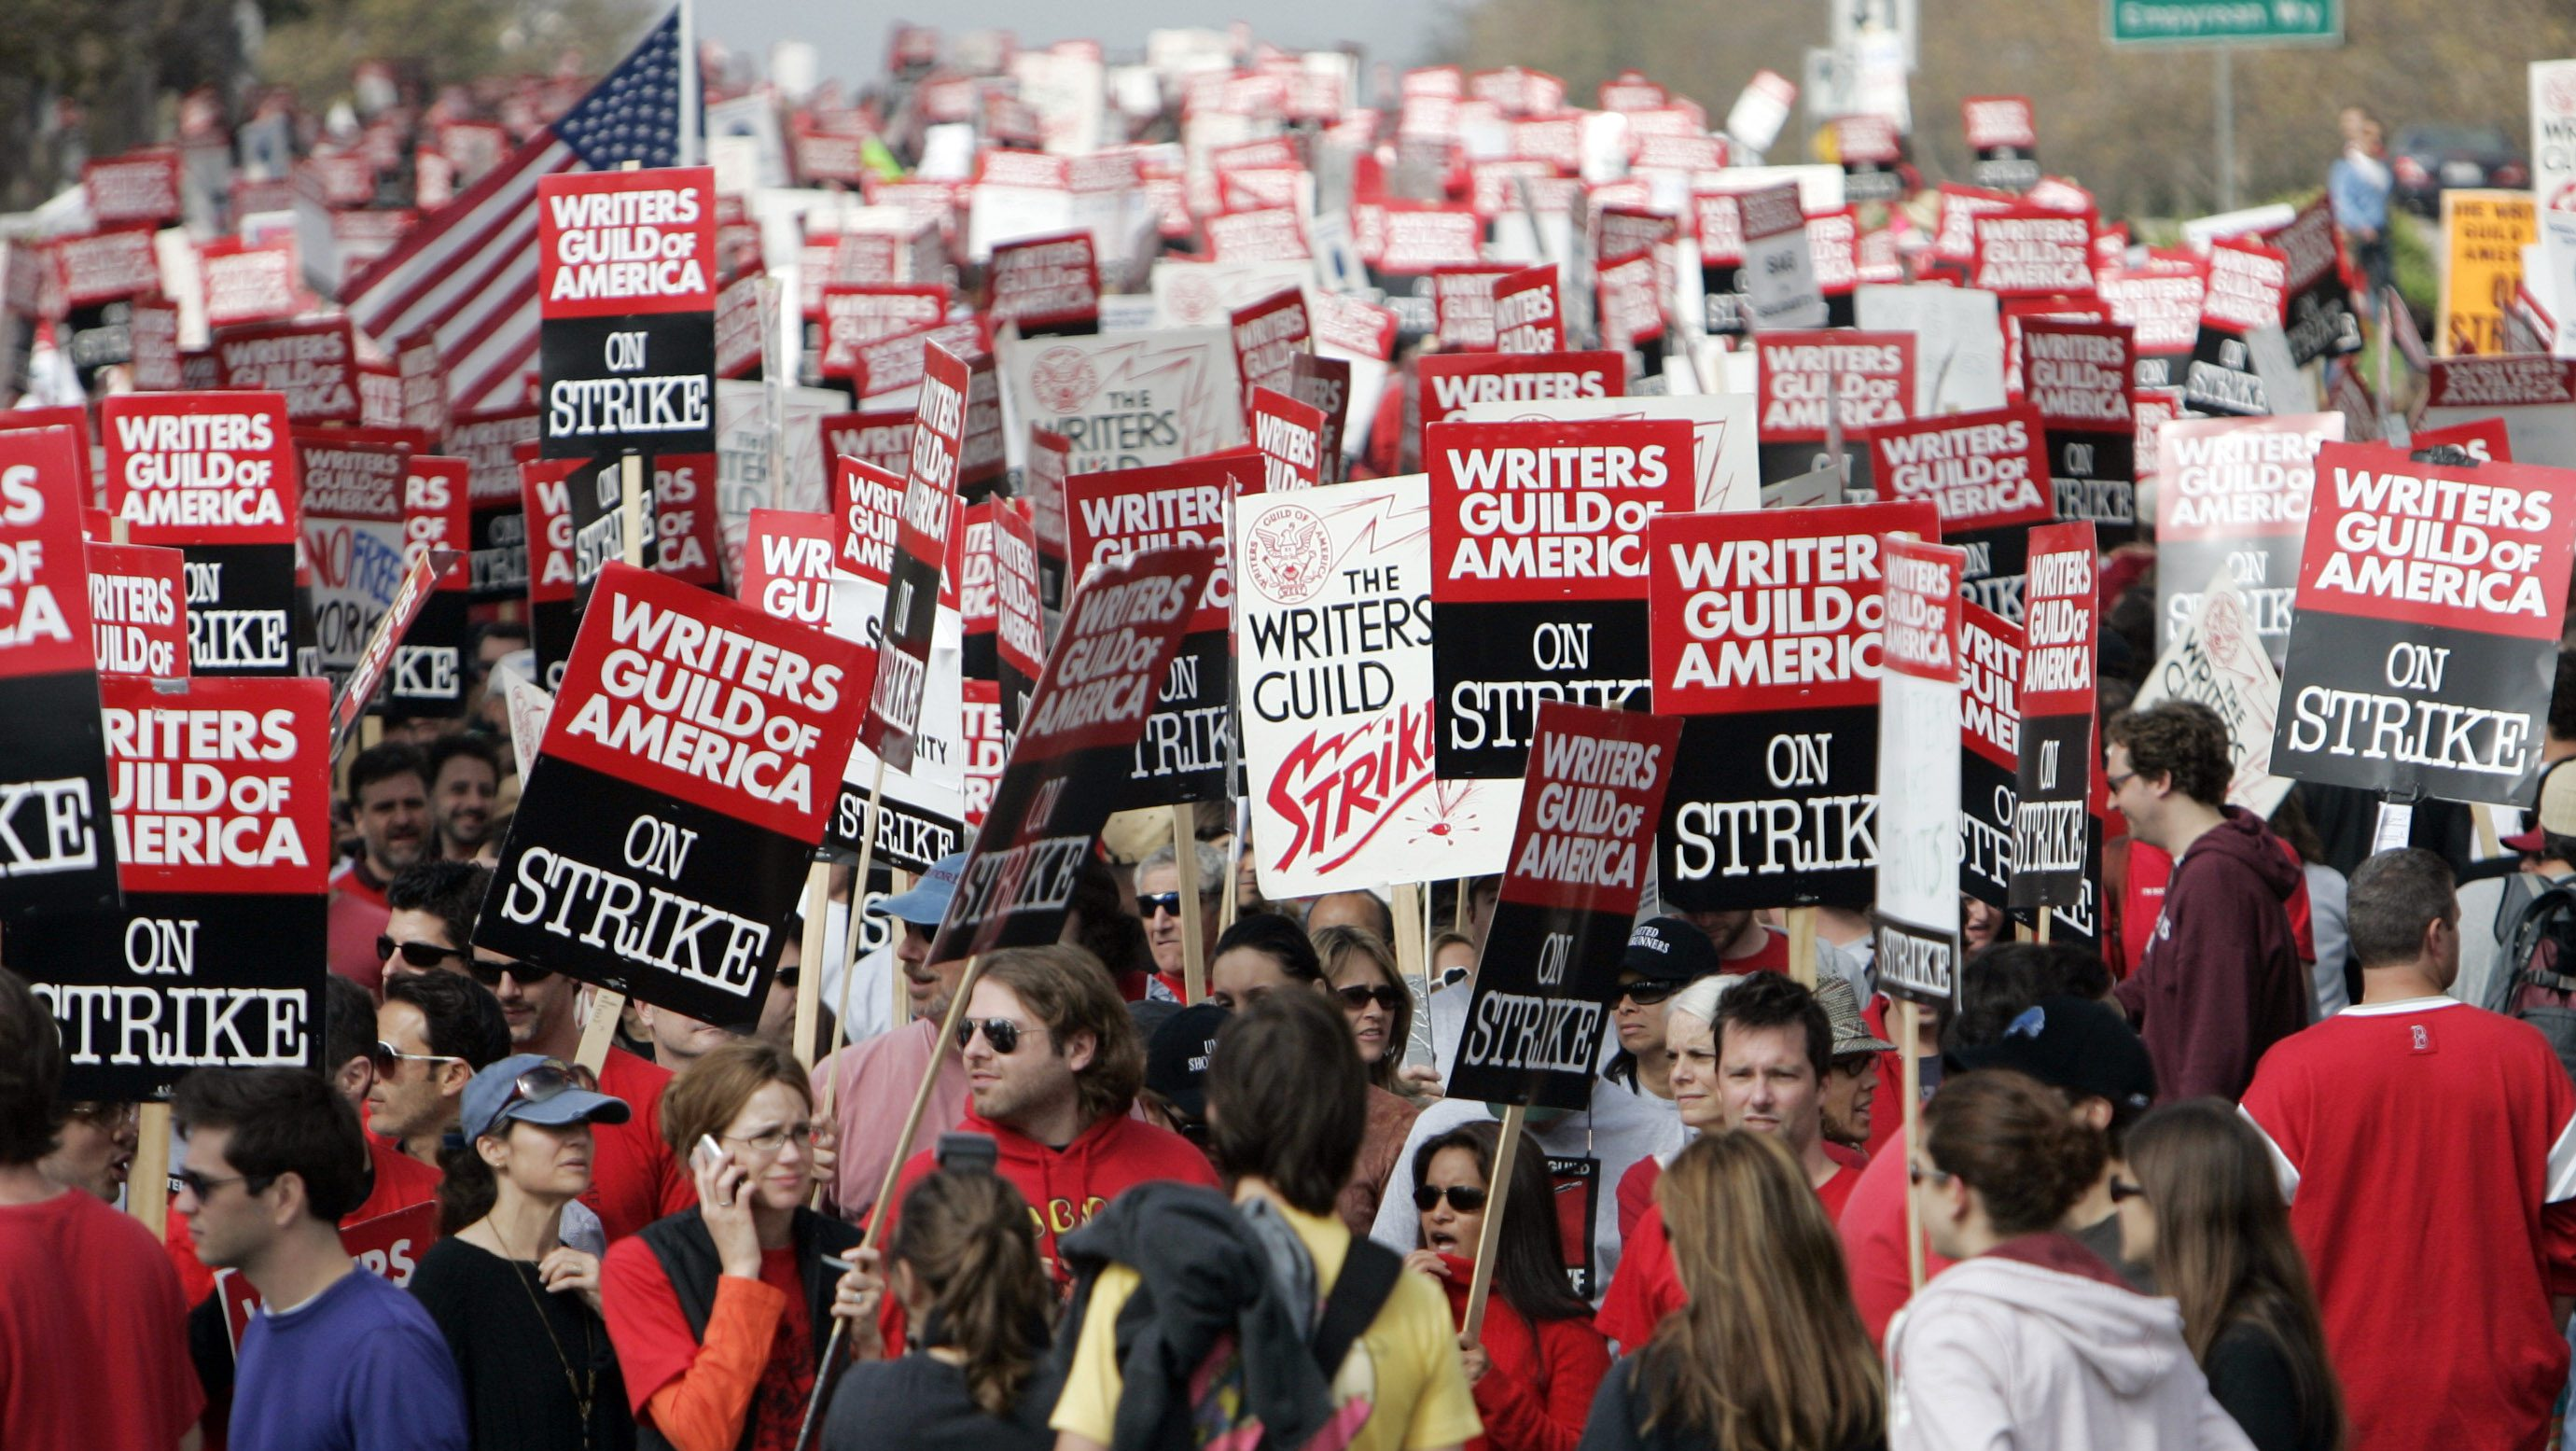 2007-2008 hollywood writers' strike